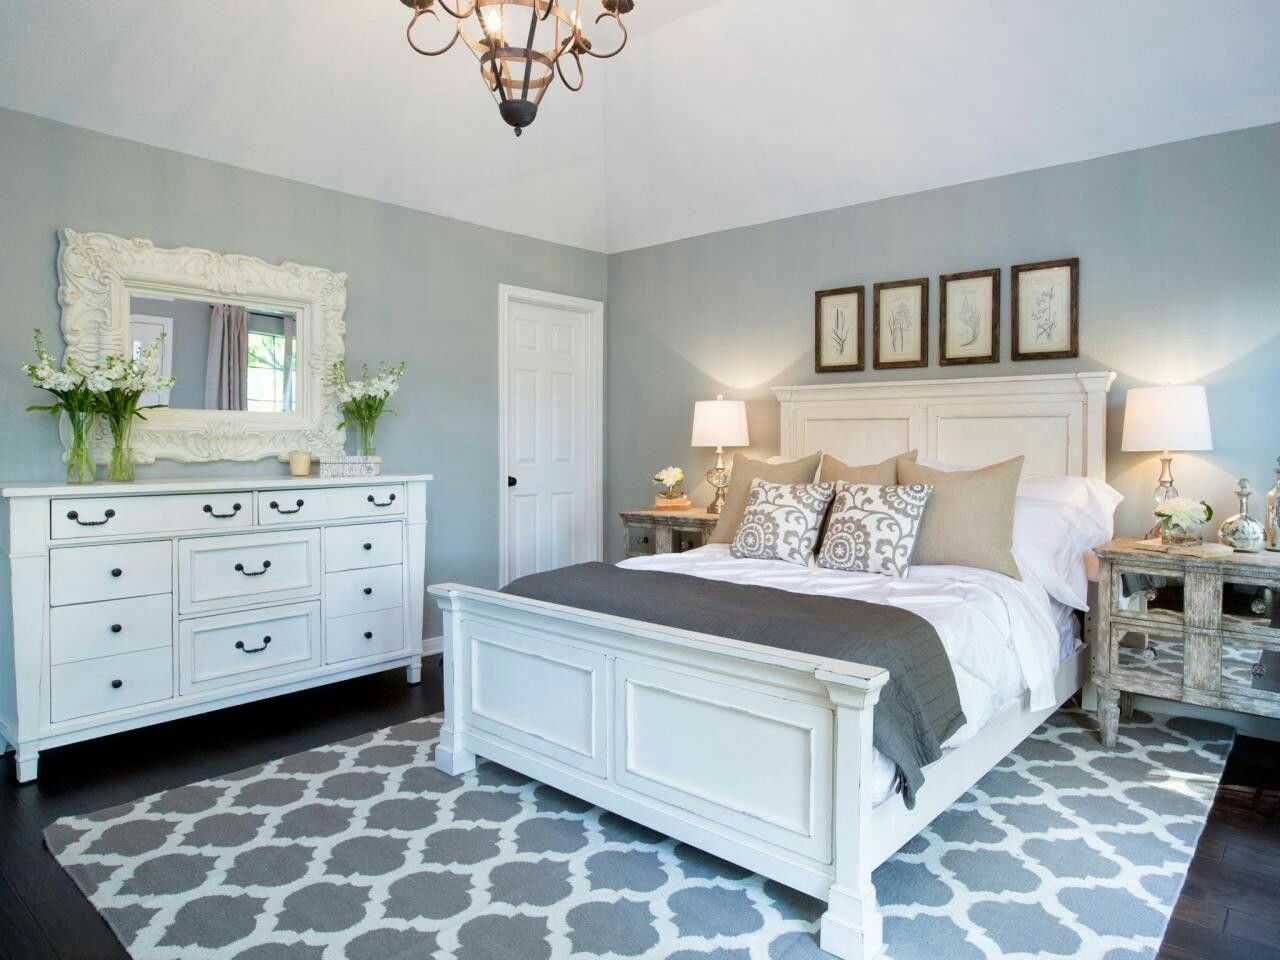 Pin By Eric Wickman On Furniture Master Bedroom Furniture Remodel Bedroom Master Bedrooms Decor White master bedroom set